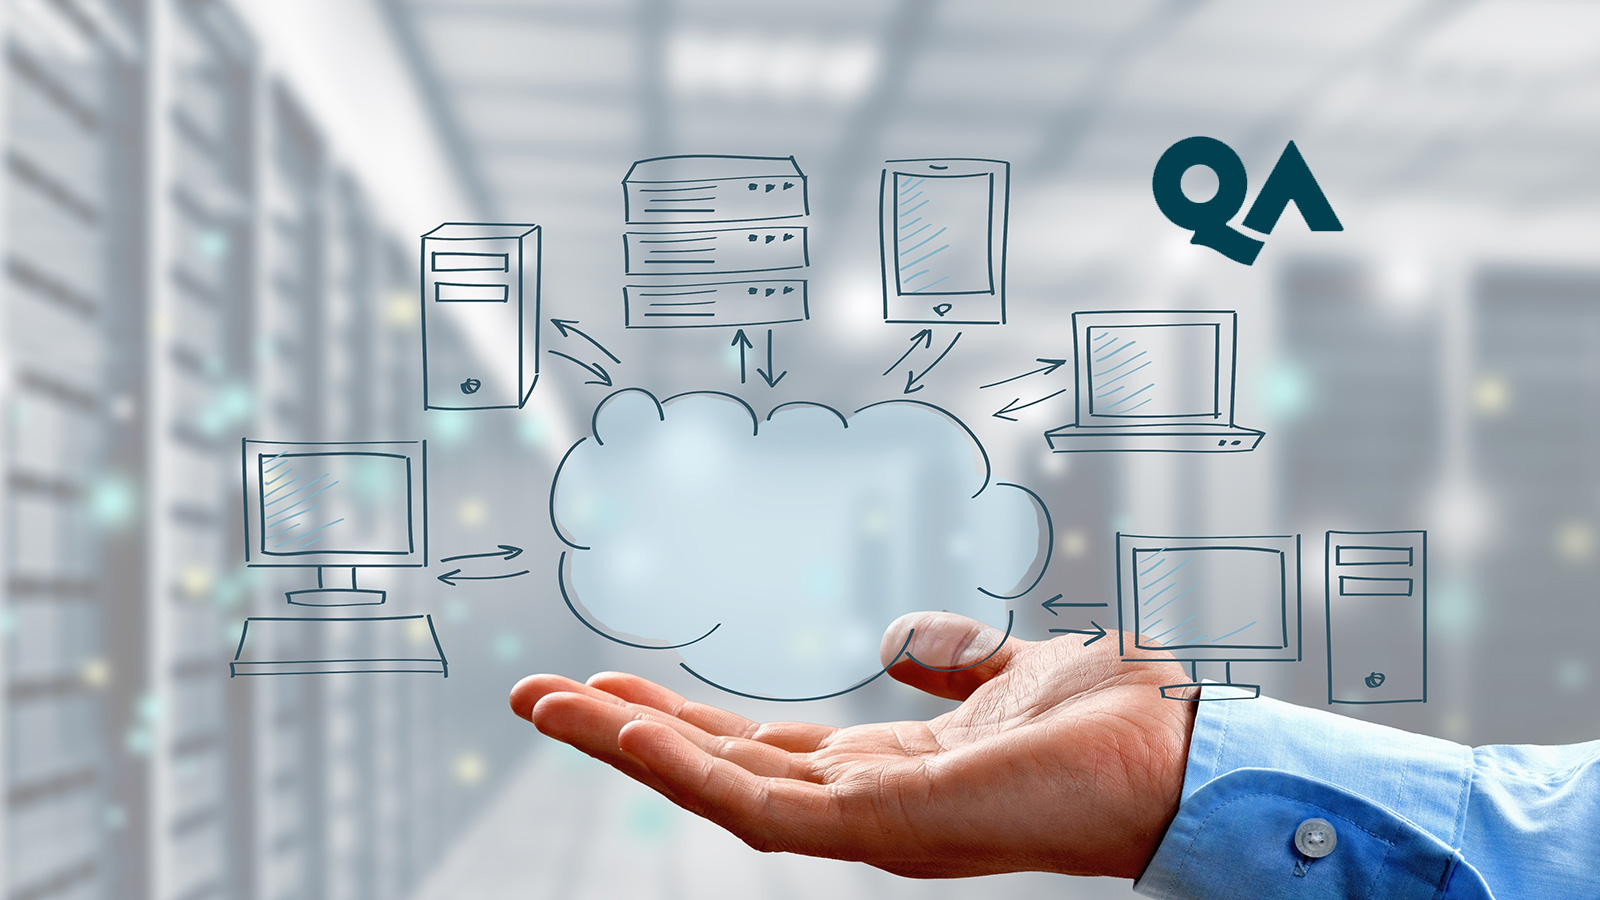 QA Acquires Cloud Academy to Create a World-Leading Corporate Skills